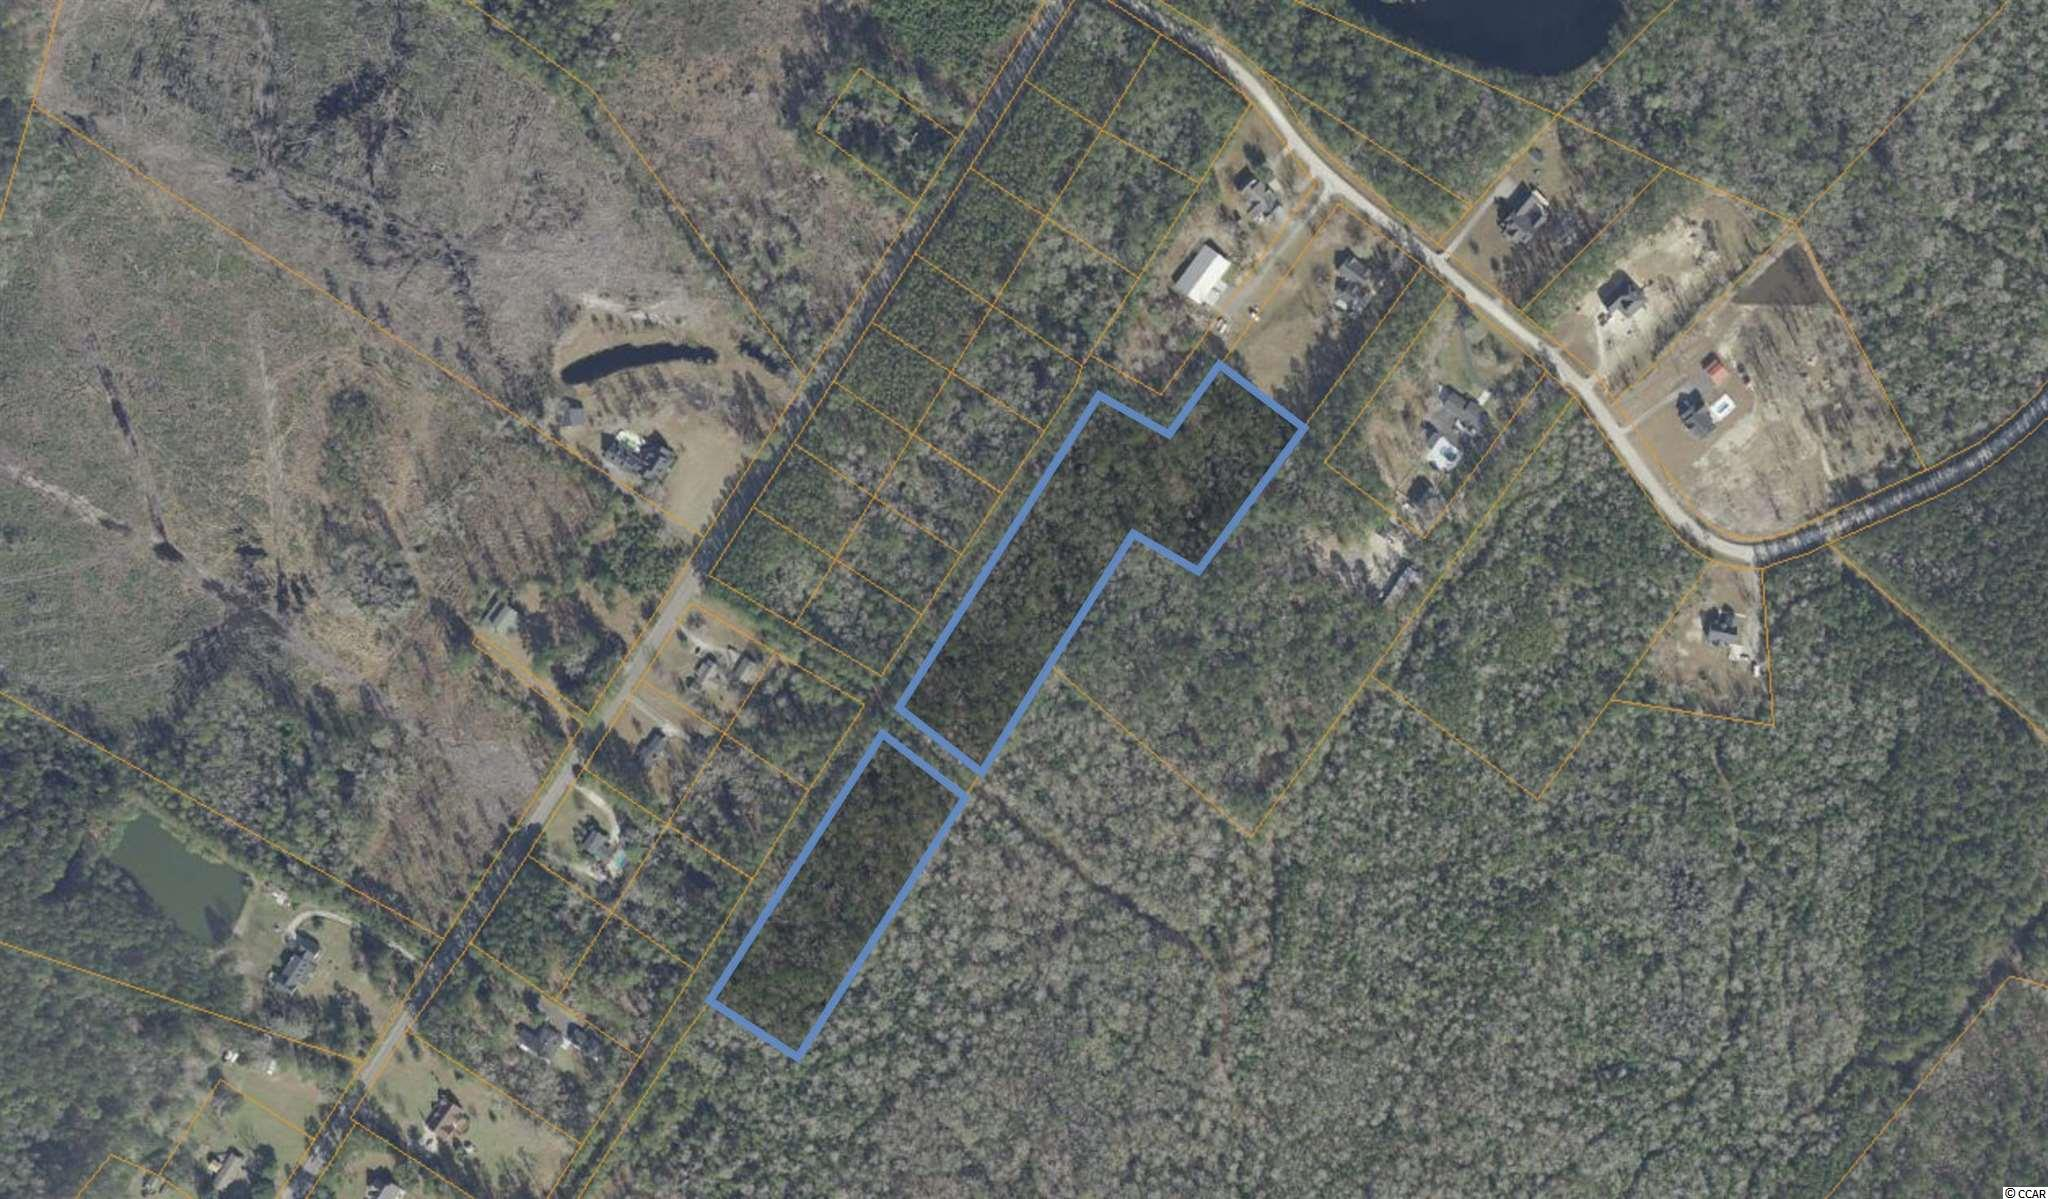 Over 8 acres that would make for a great place to build your own home and have privacy. Property has great potential to be developed. Many options for this property. Located only minutes to Conway Riverwalk, Shopping, Restaurants and more.